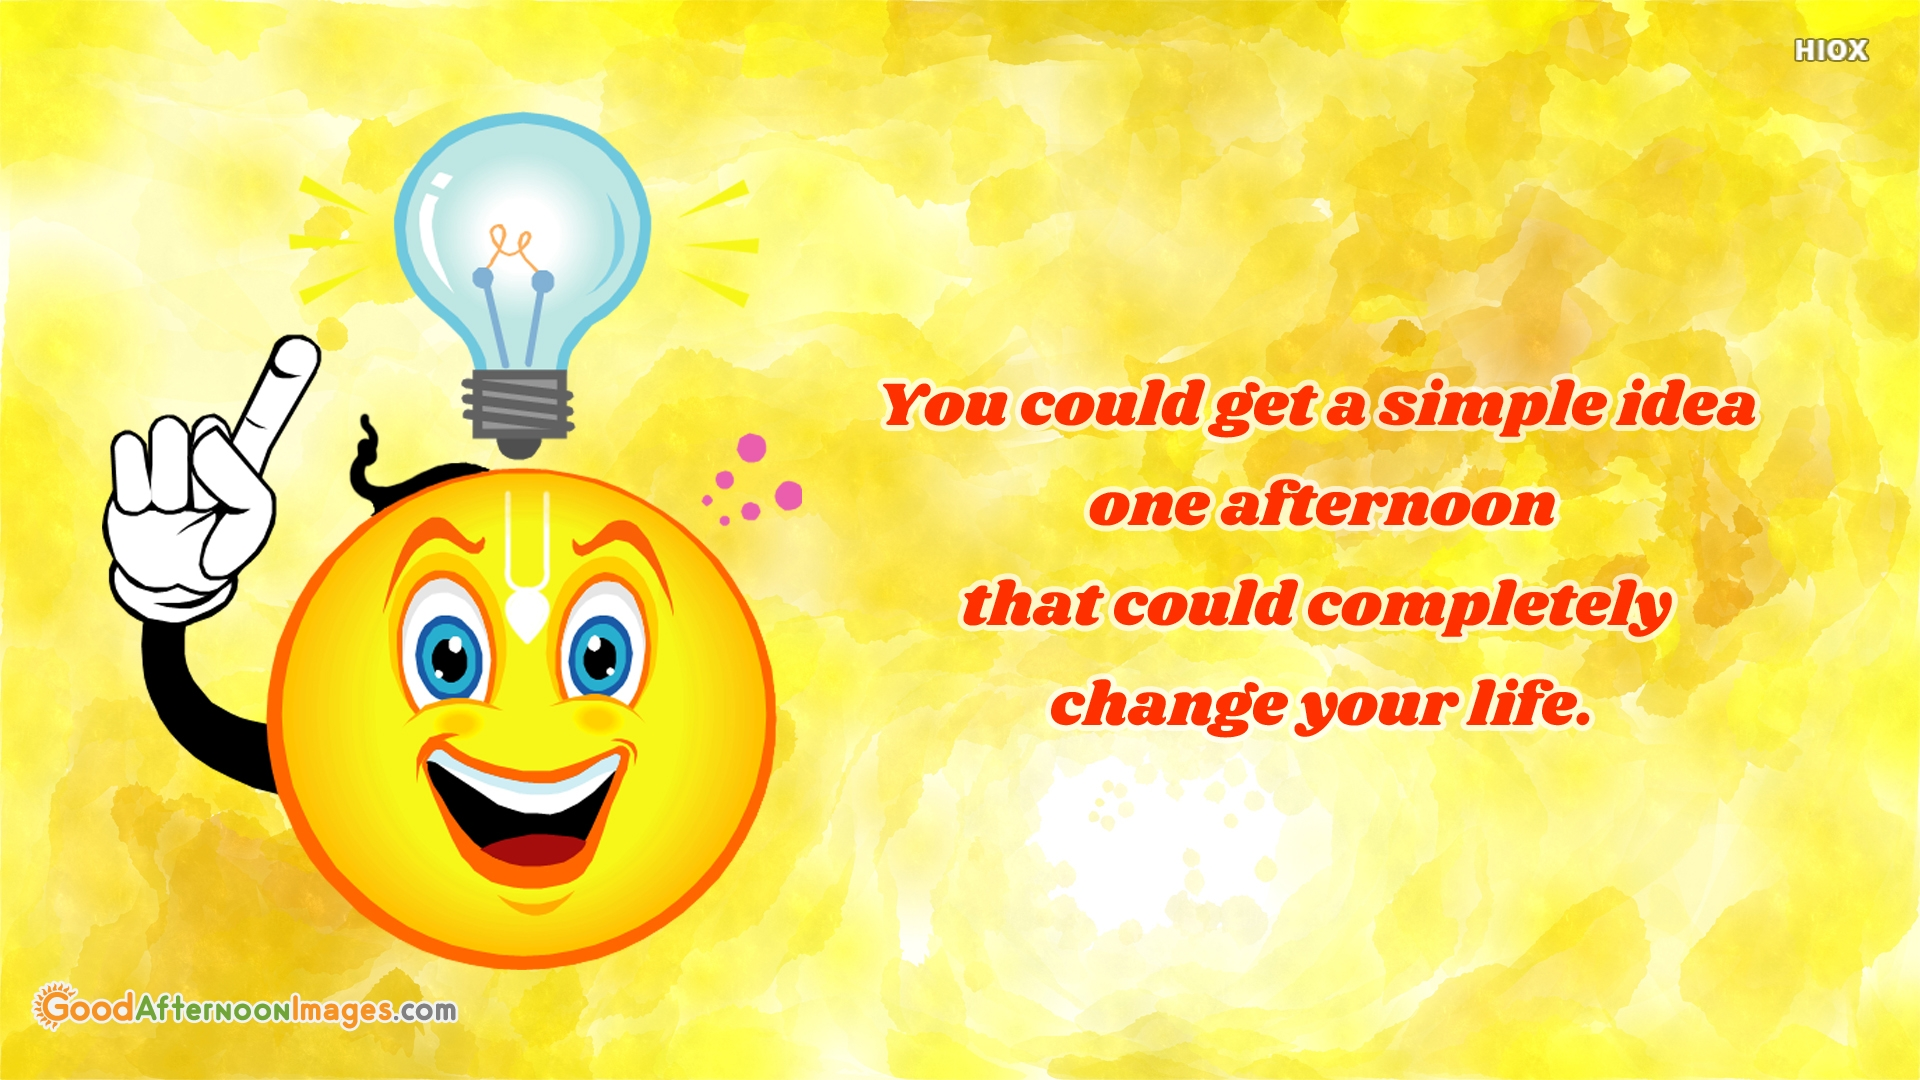 You Could Get A Simple Idea One Afternoon That Could Completely Change Your Life.